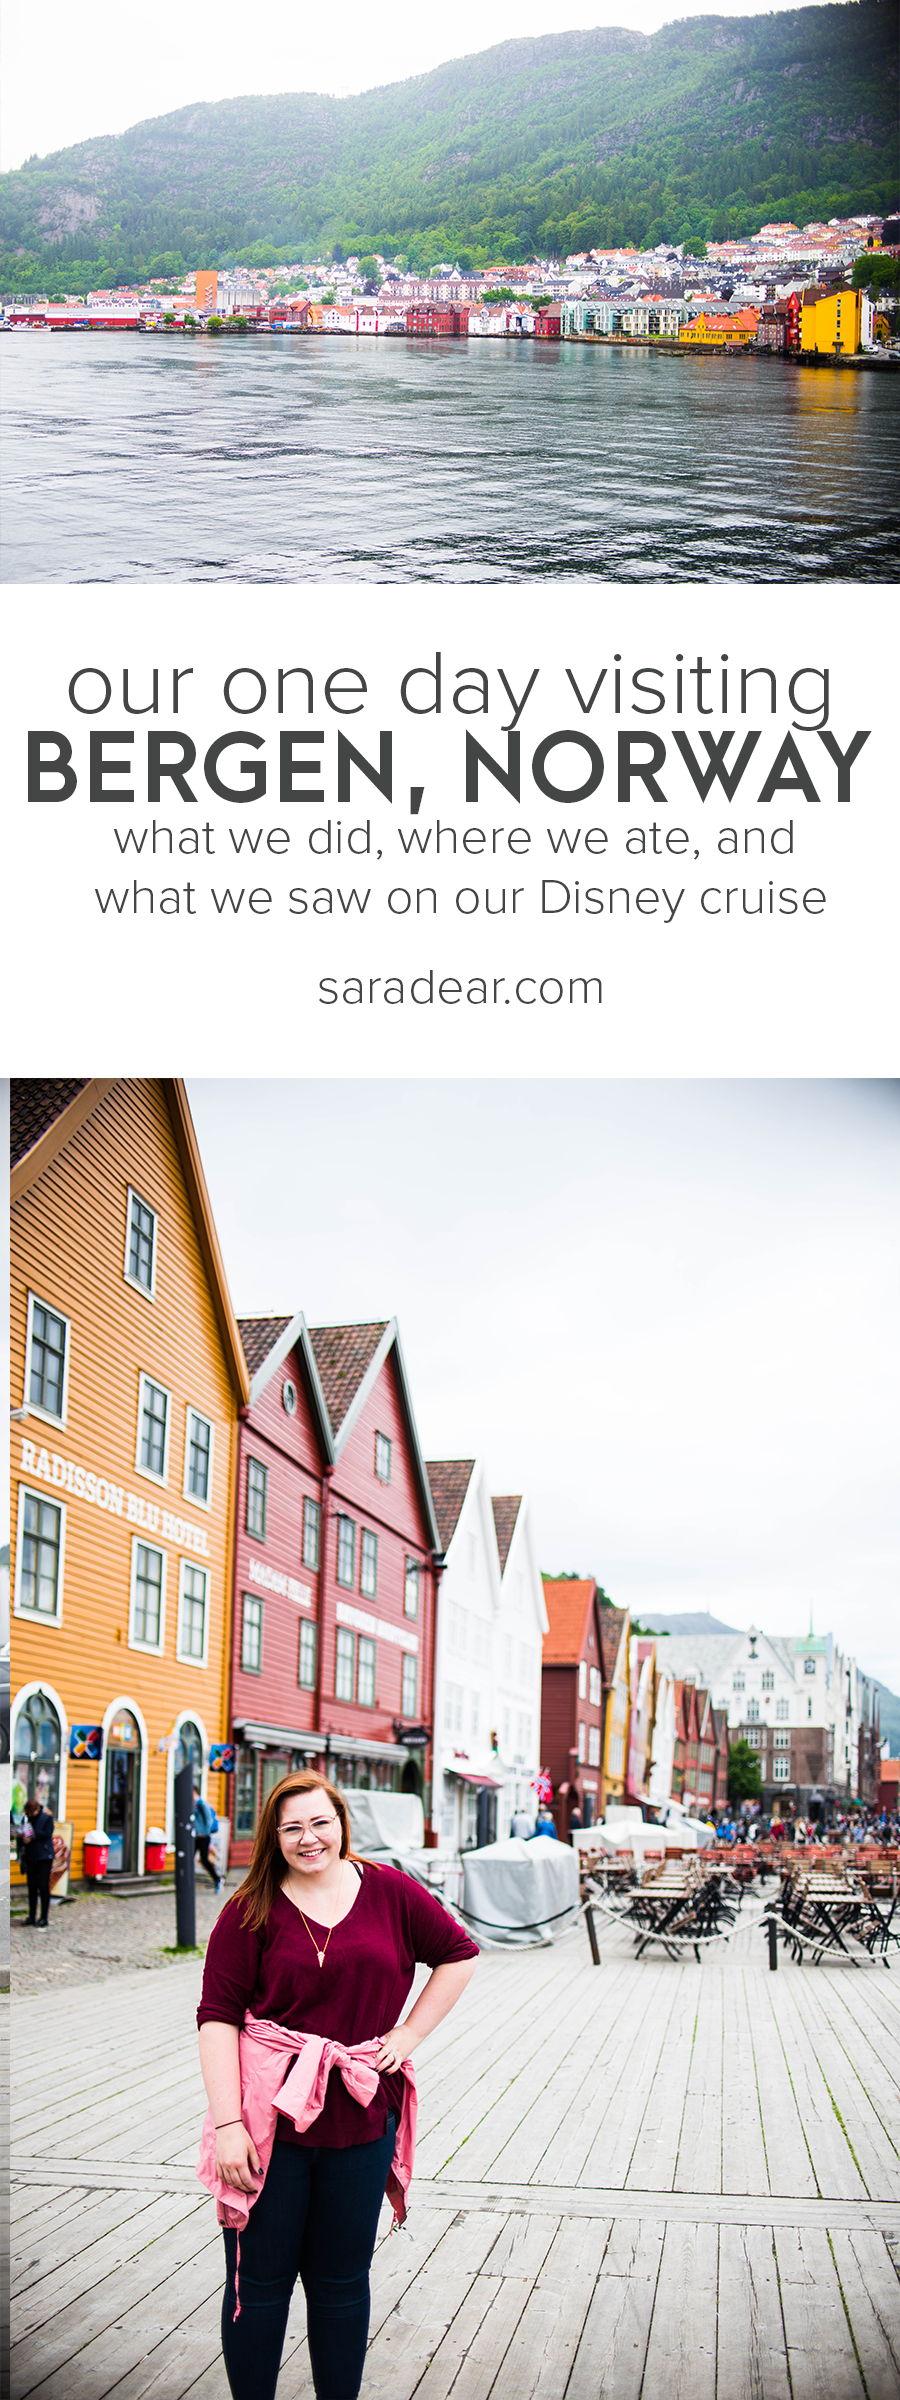 One day family trip to Bergen Norway on Disney Magic Cruiseline.png